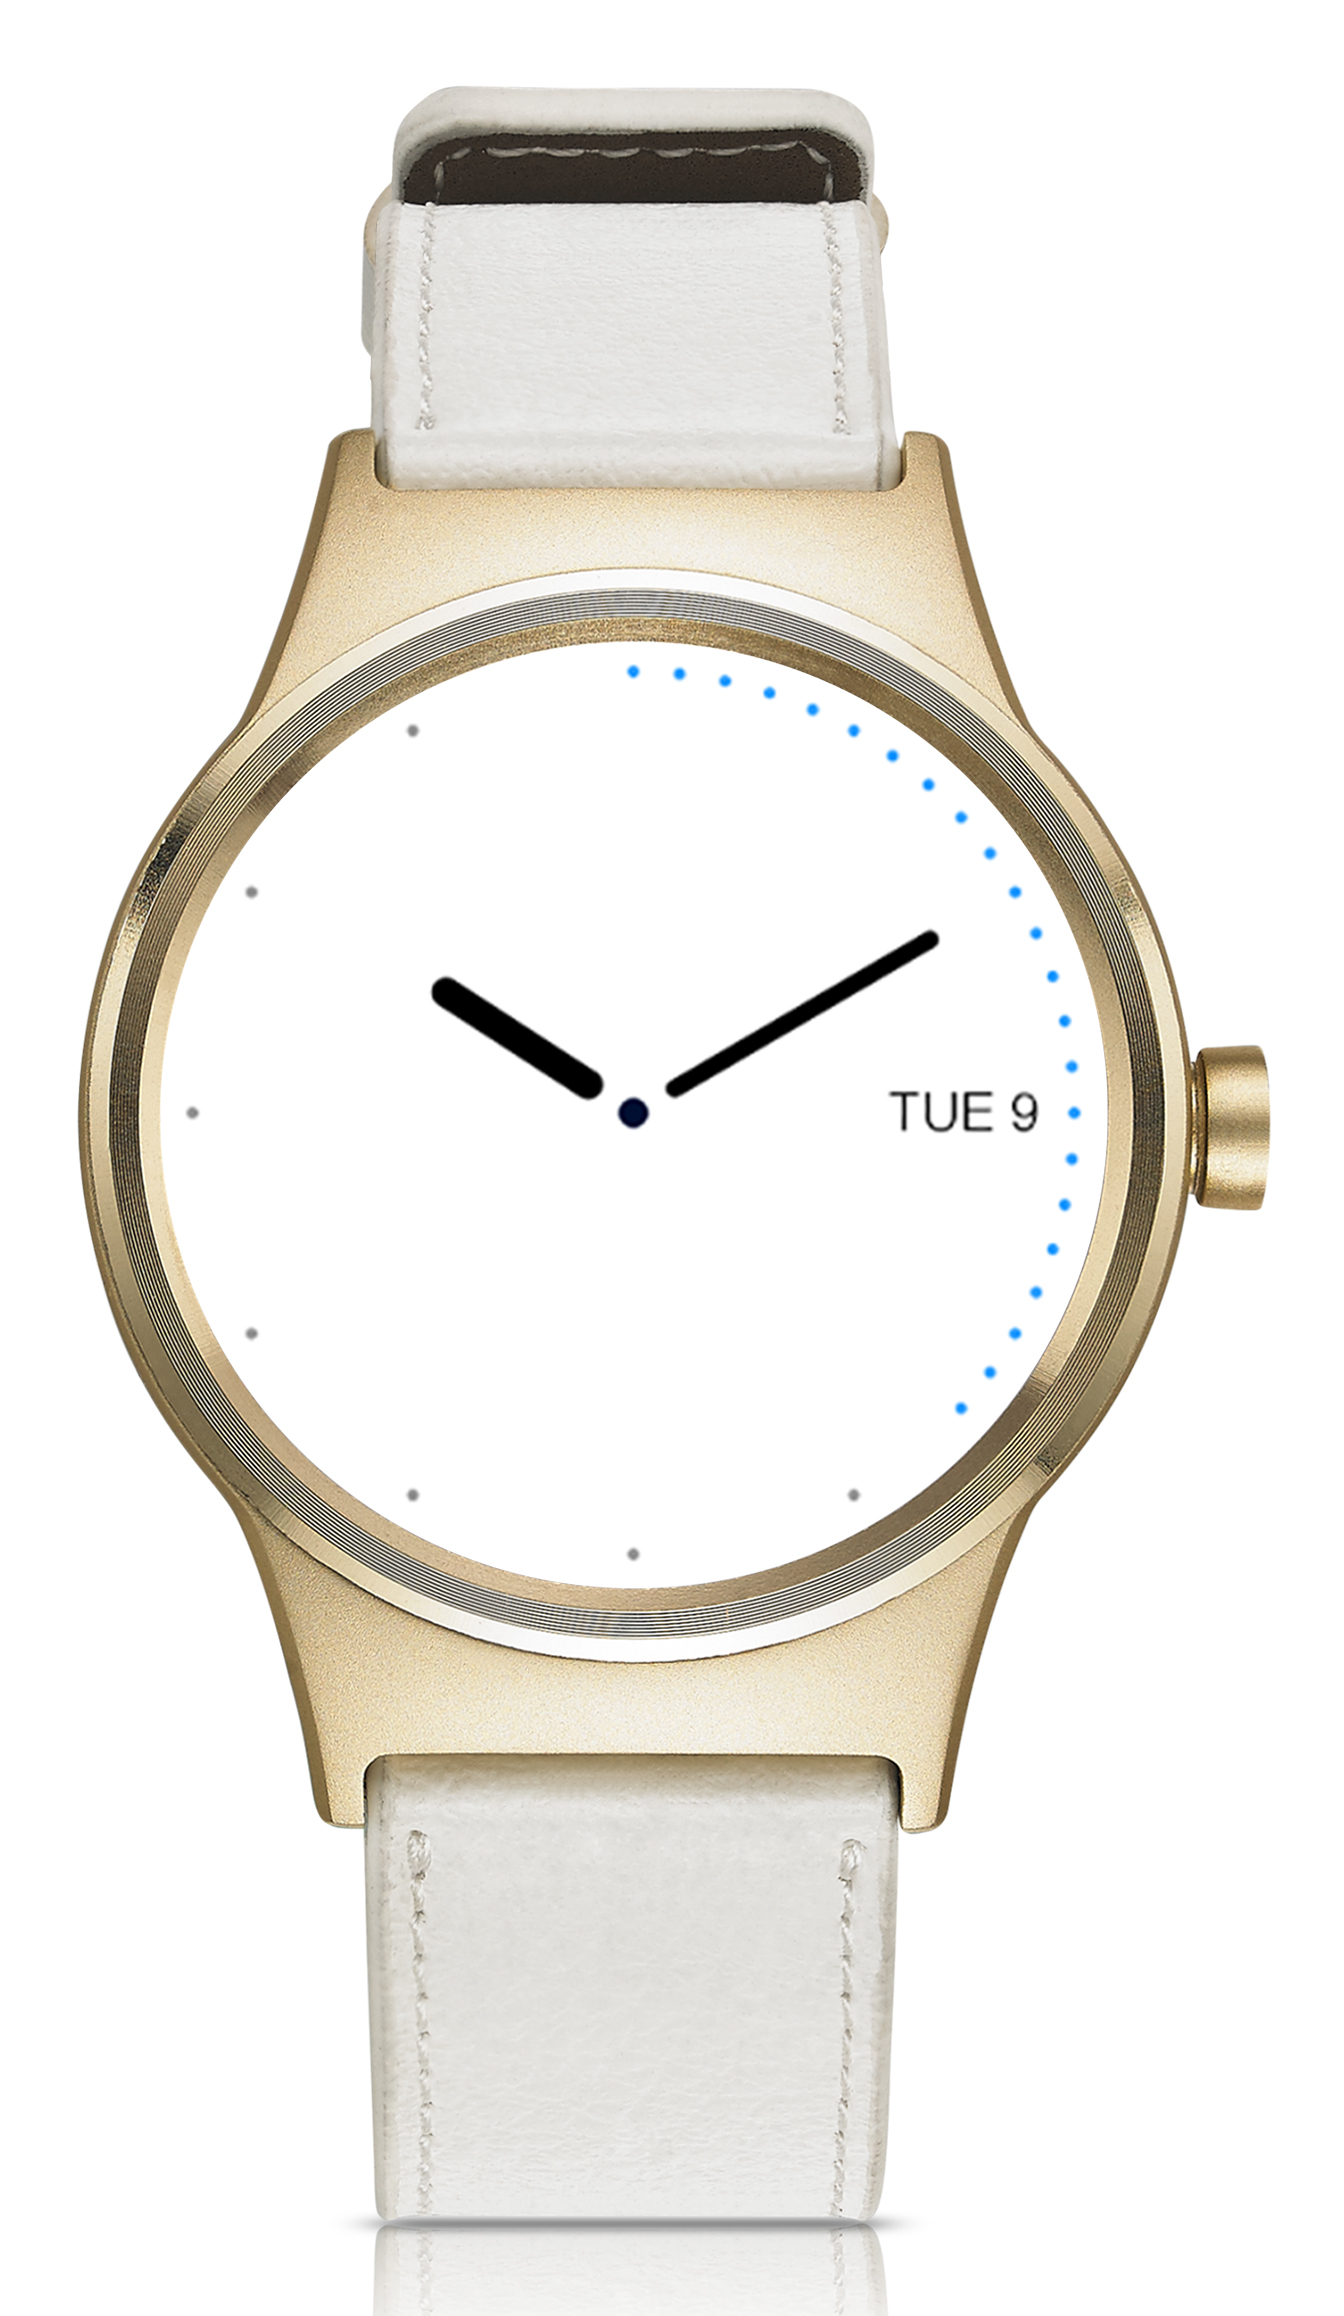 TCL MOVETIME Smartwatch, Leather, Gold/White